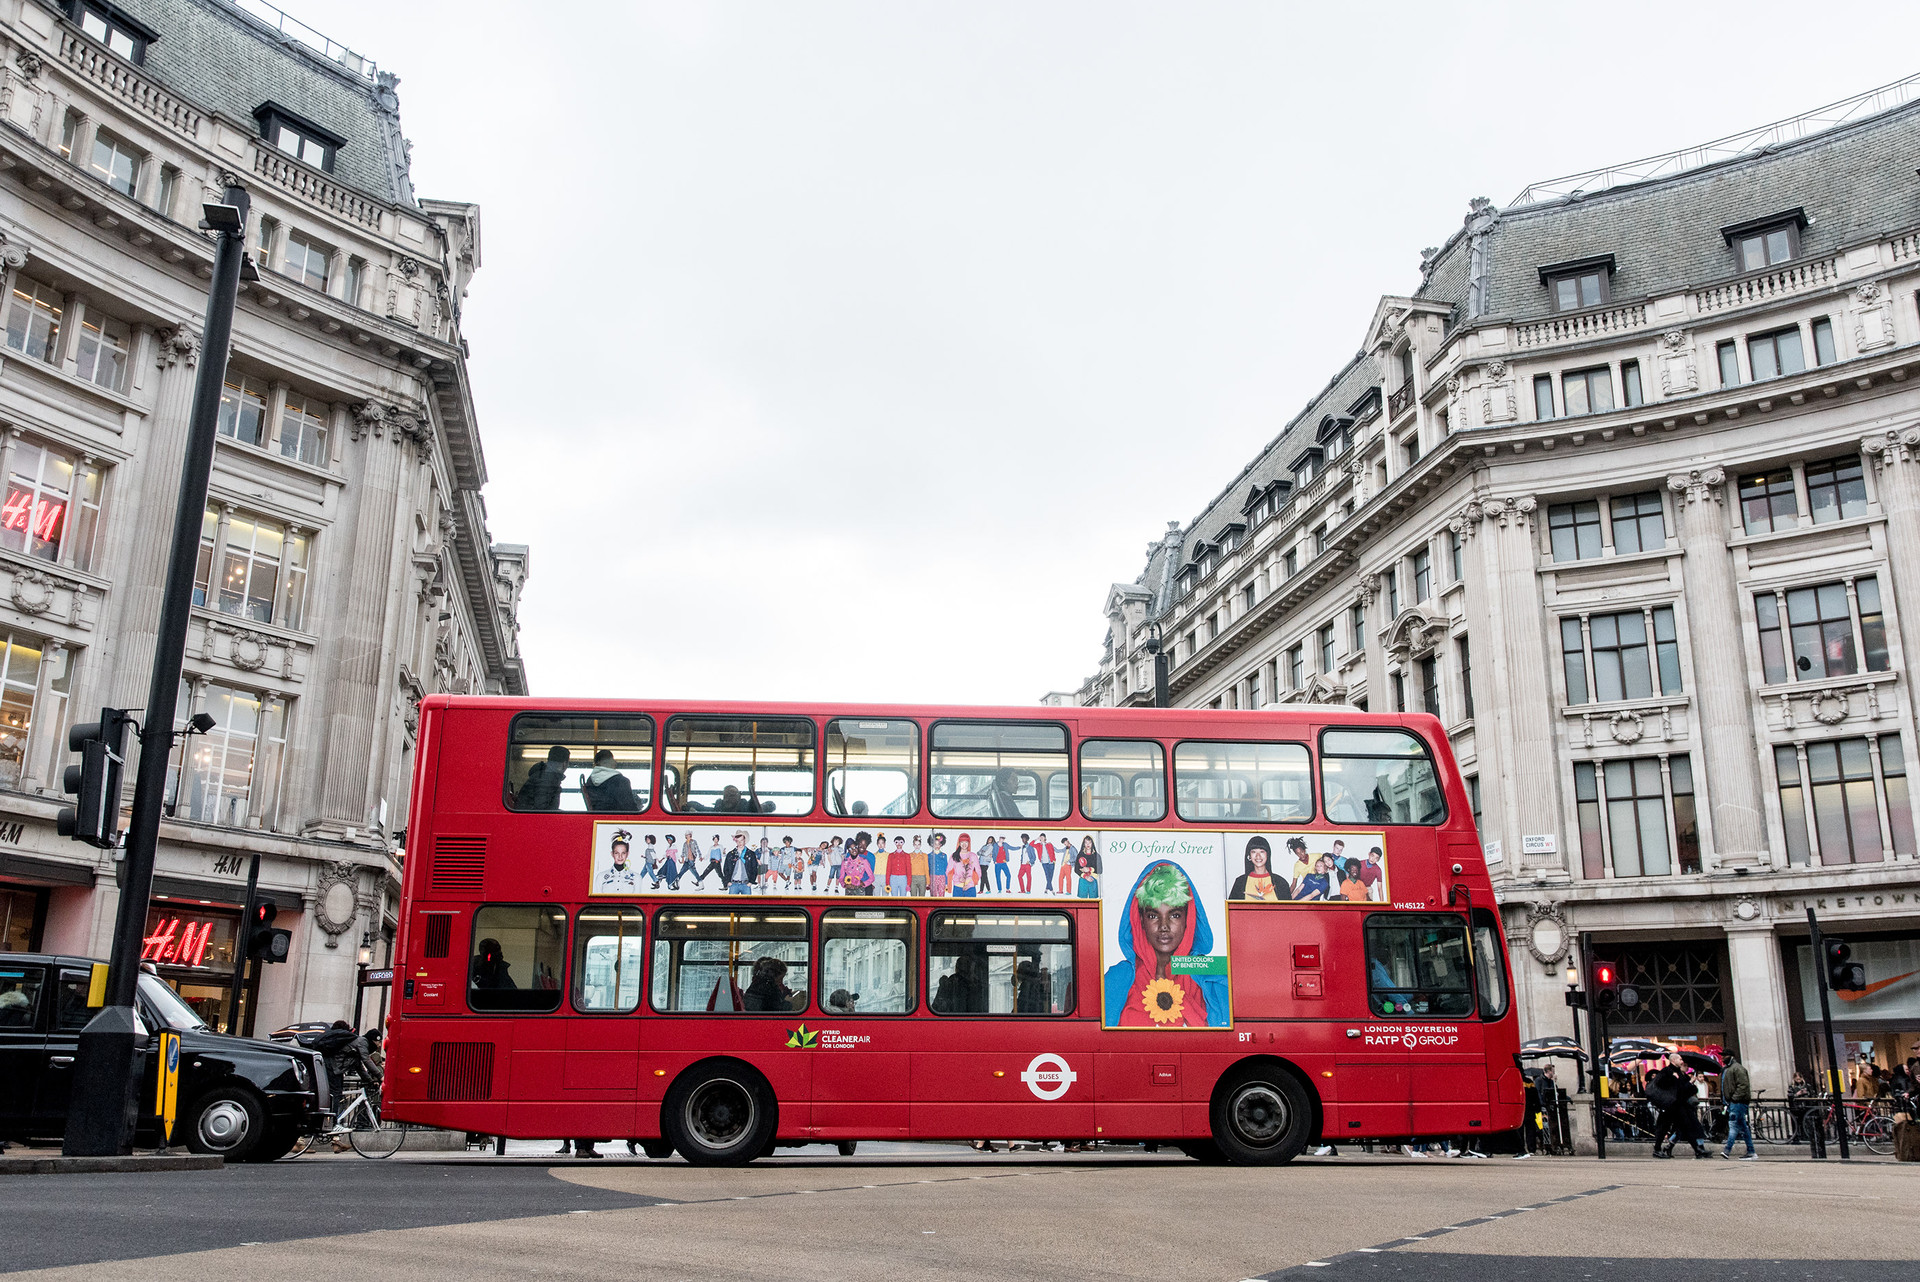 United colors of benetton campaign london